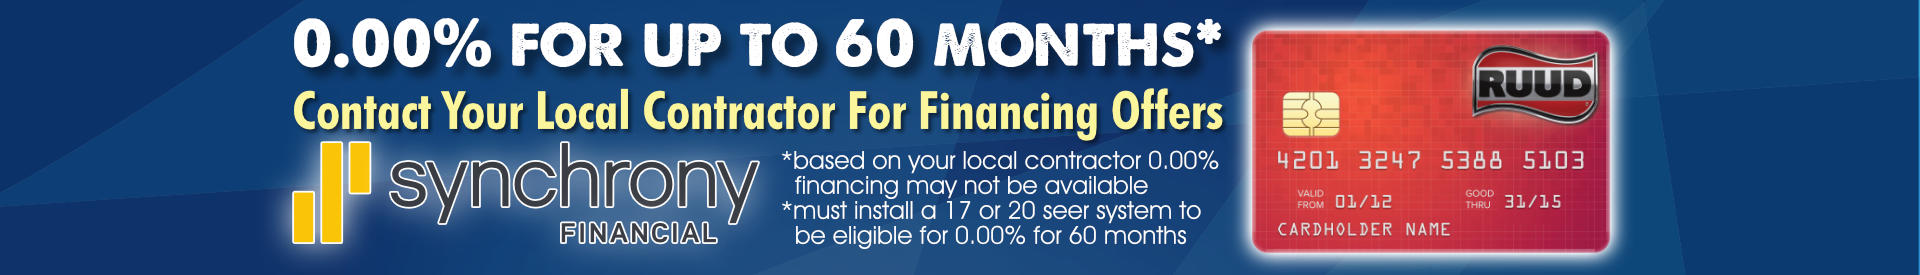 Ruud Synchrony Financing Up To 0.00% APR*